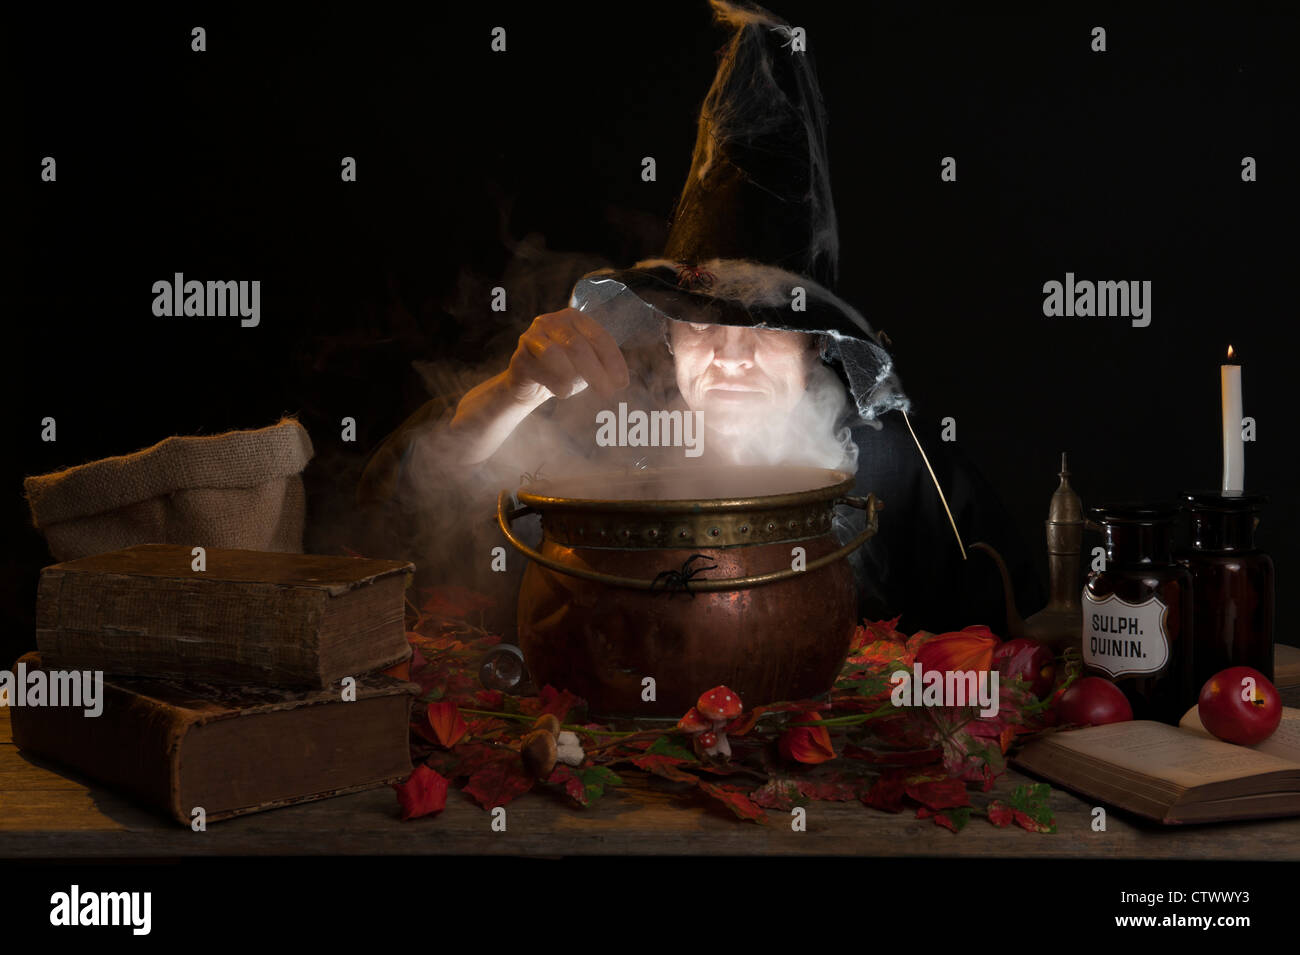 halloween making a potion in a copper cauldron - Stock Image